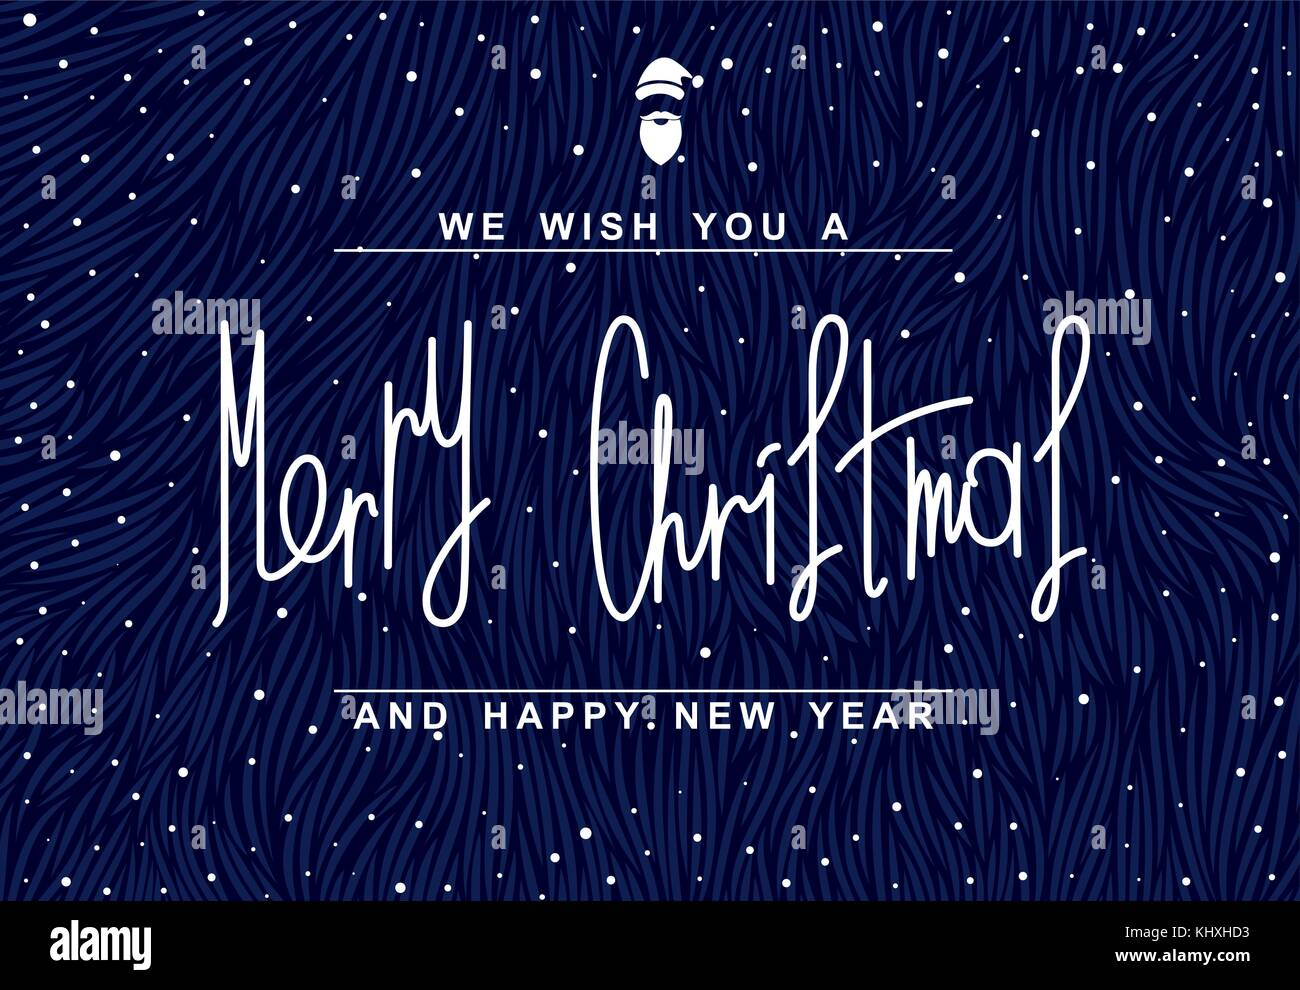 we wish you a merry christmas and happy new year 2018 festive flyer vector illustration